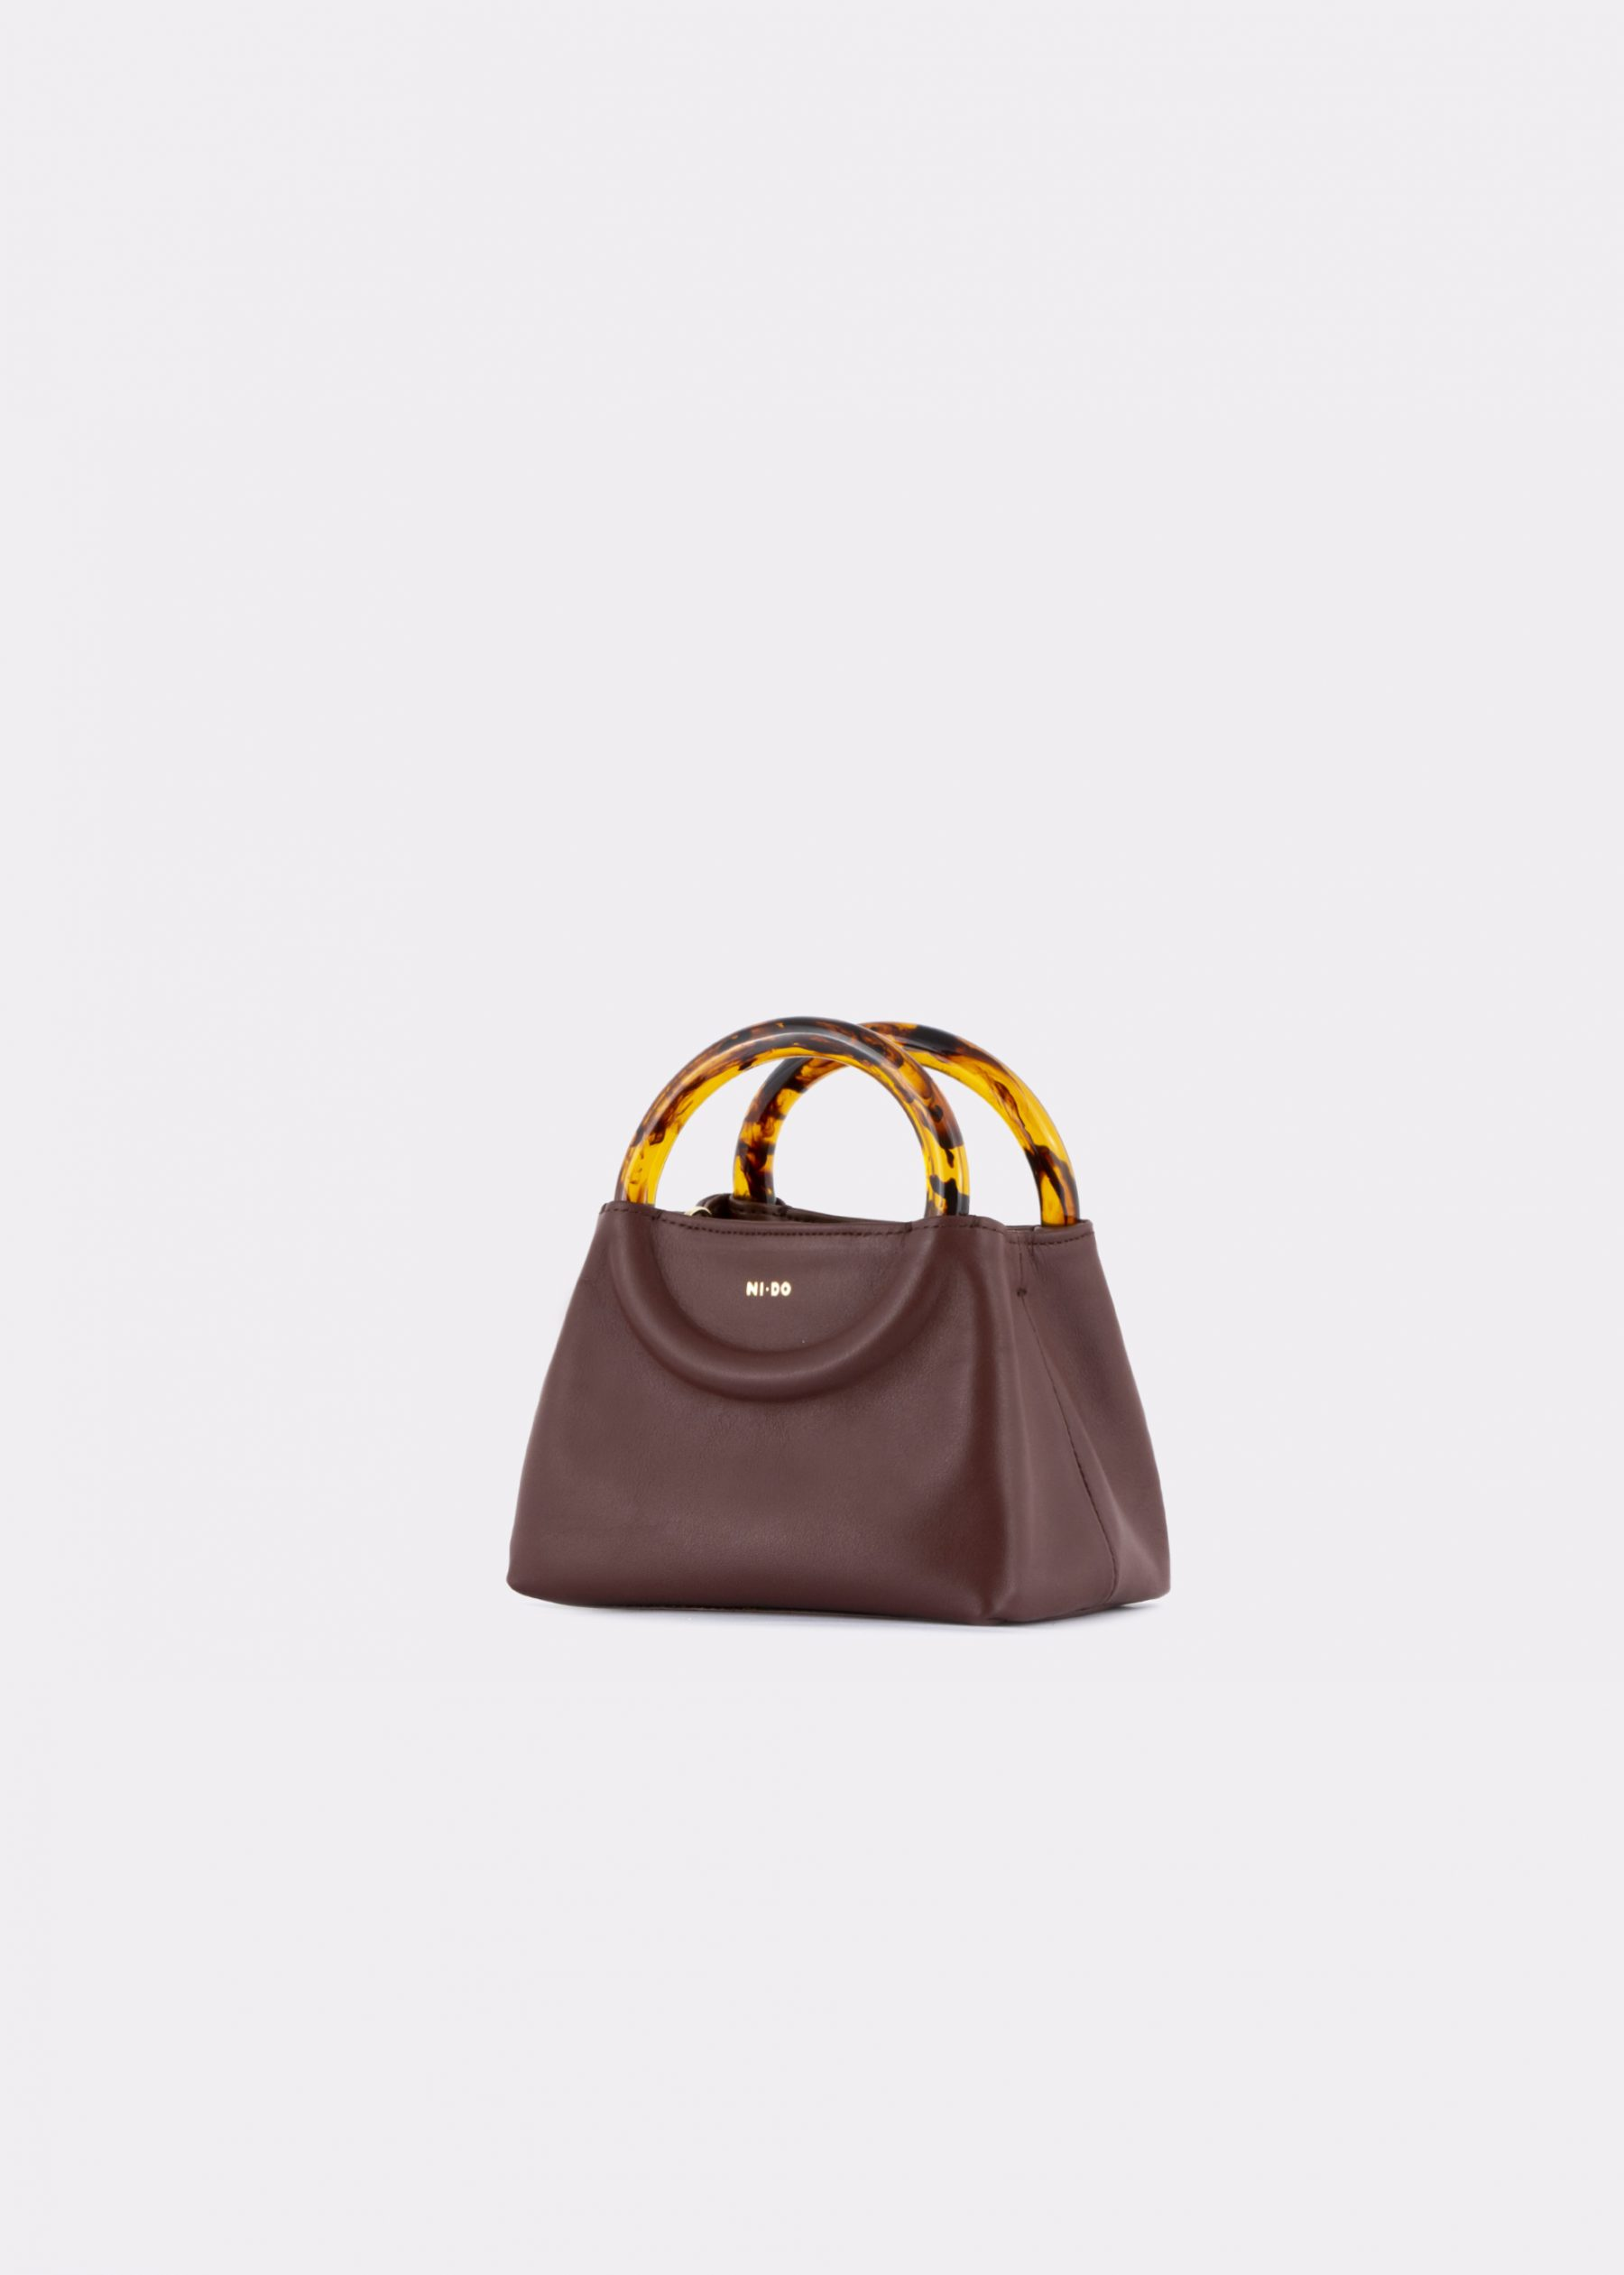 NIDO Bolla_Micro bag chestnut_side view